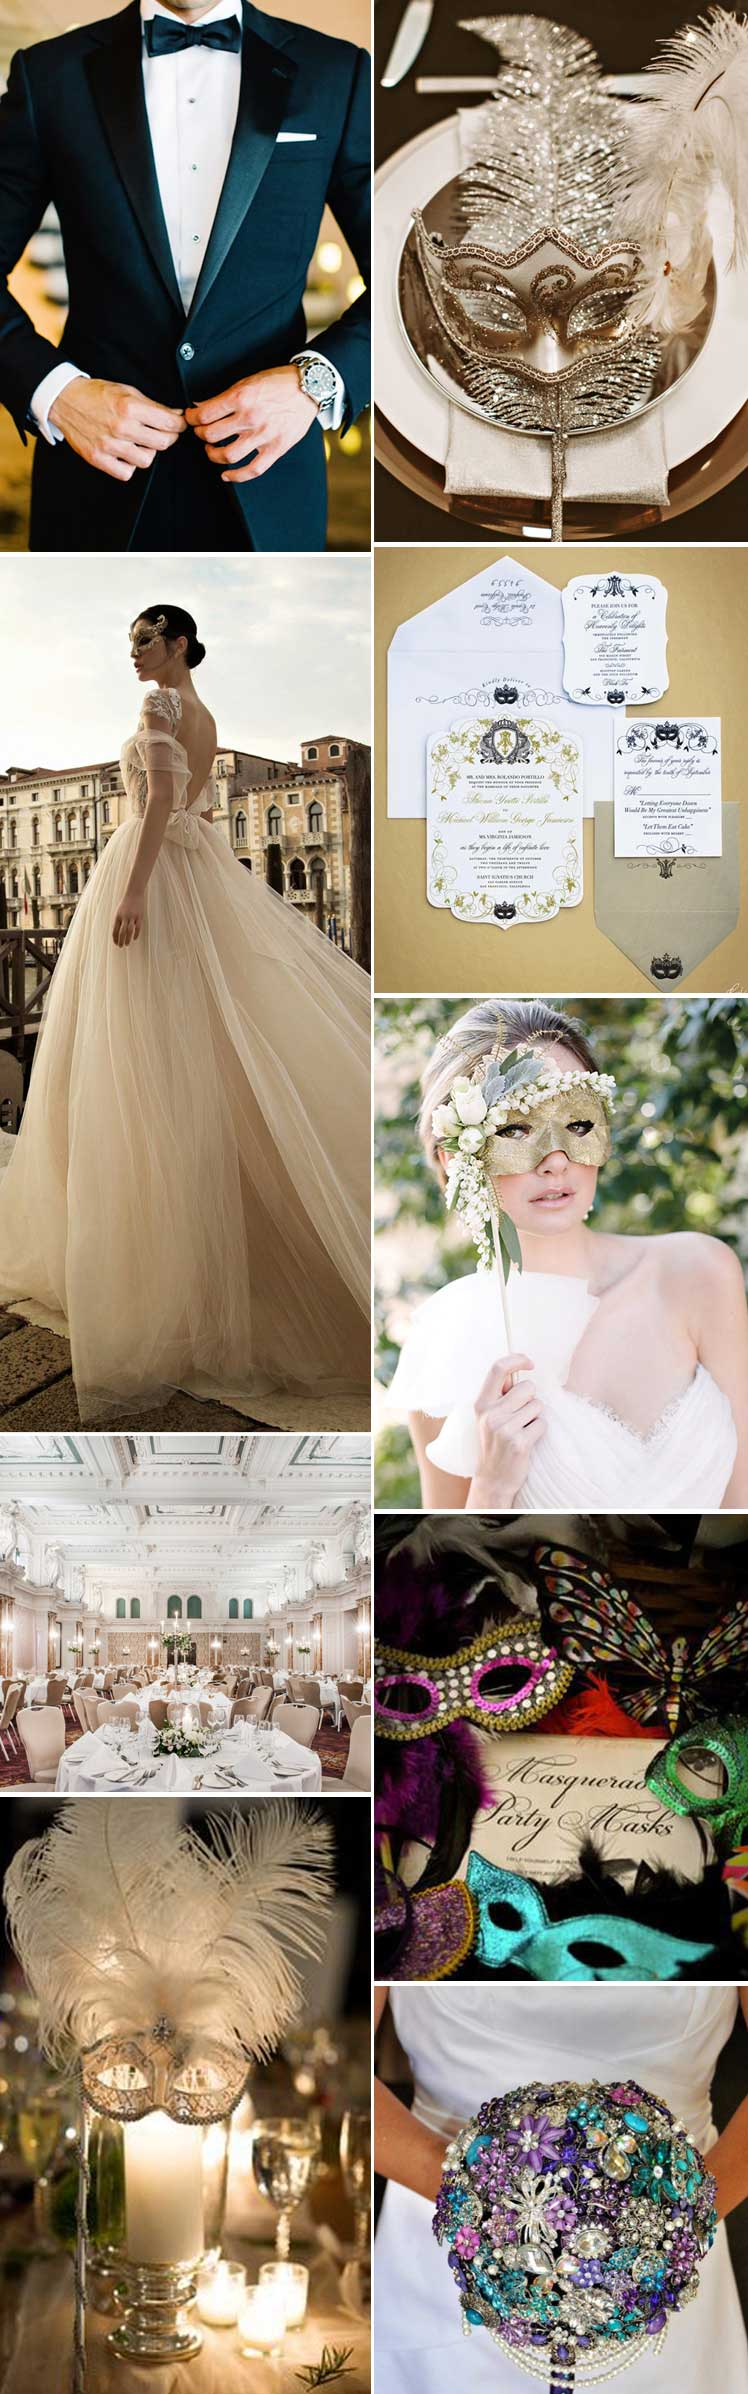 Masquerade wedding theme inspiration for a dramatic style